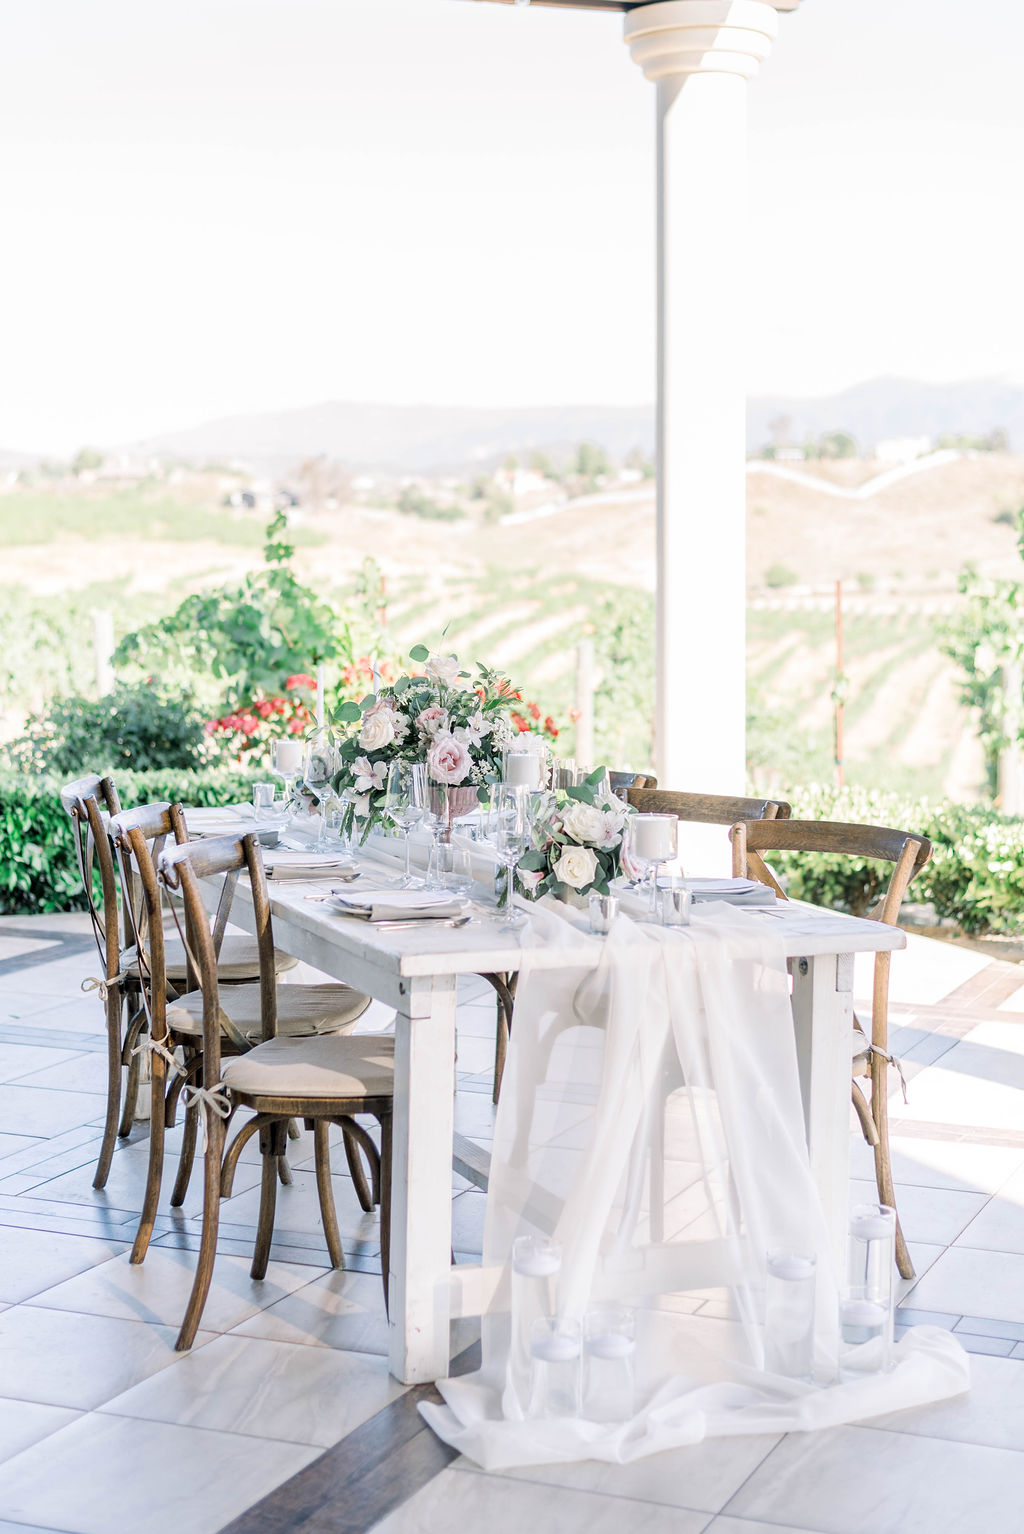 farm table setup with sheer white runner and white candles